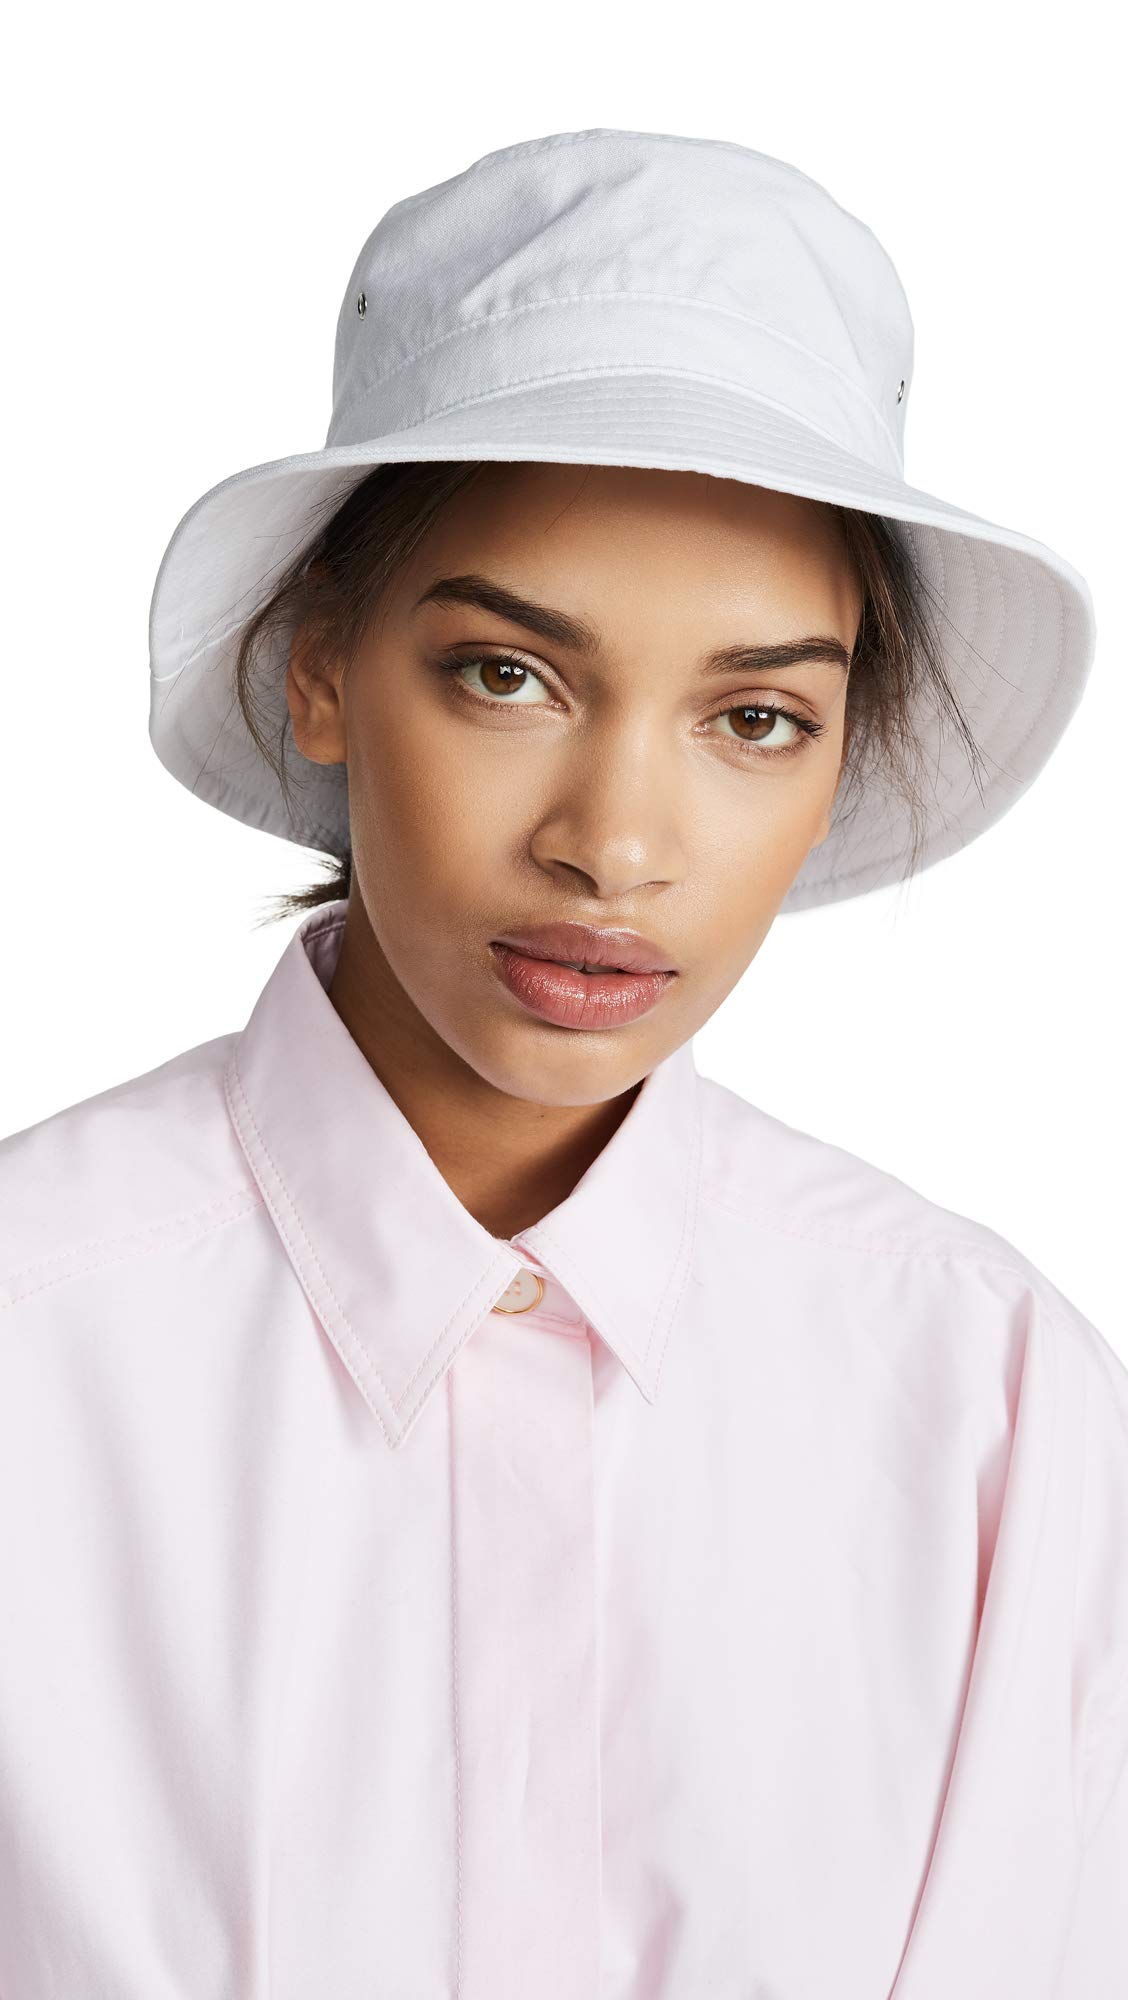 Hat Attack Women's Perfect Bucket Hat, White, One Size by Hat Attack (Image #1)